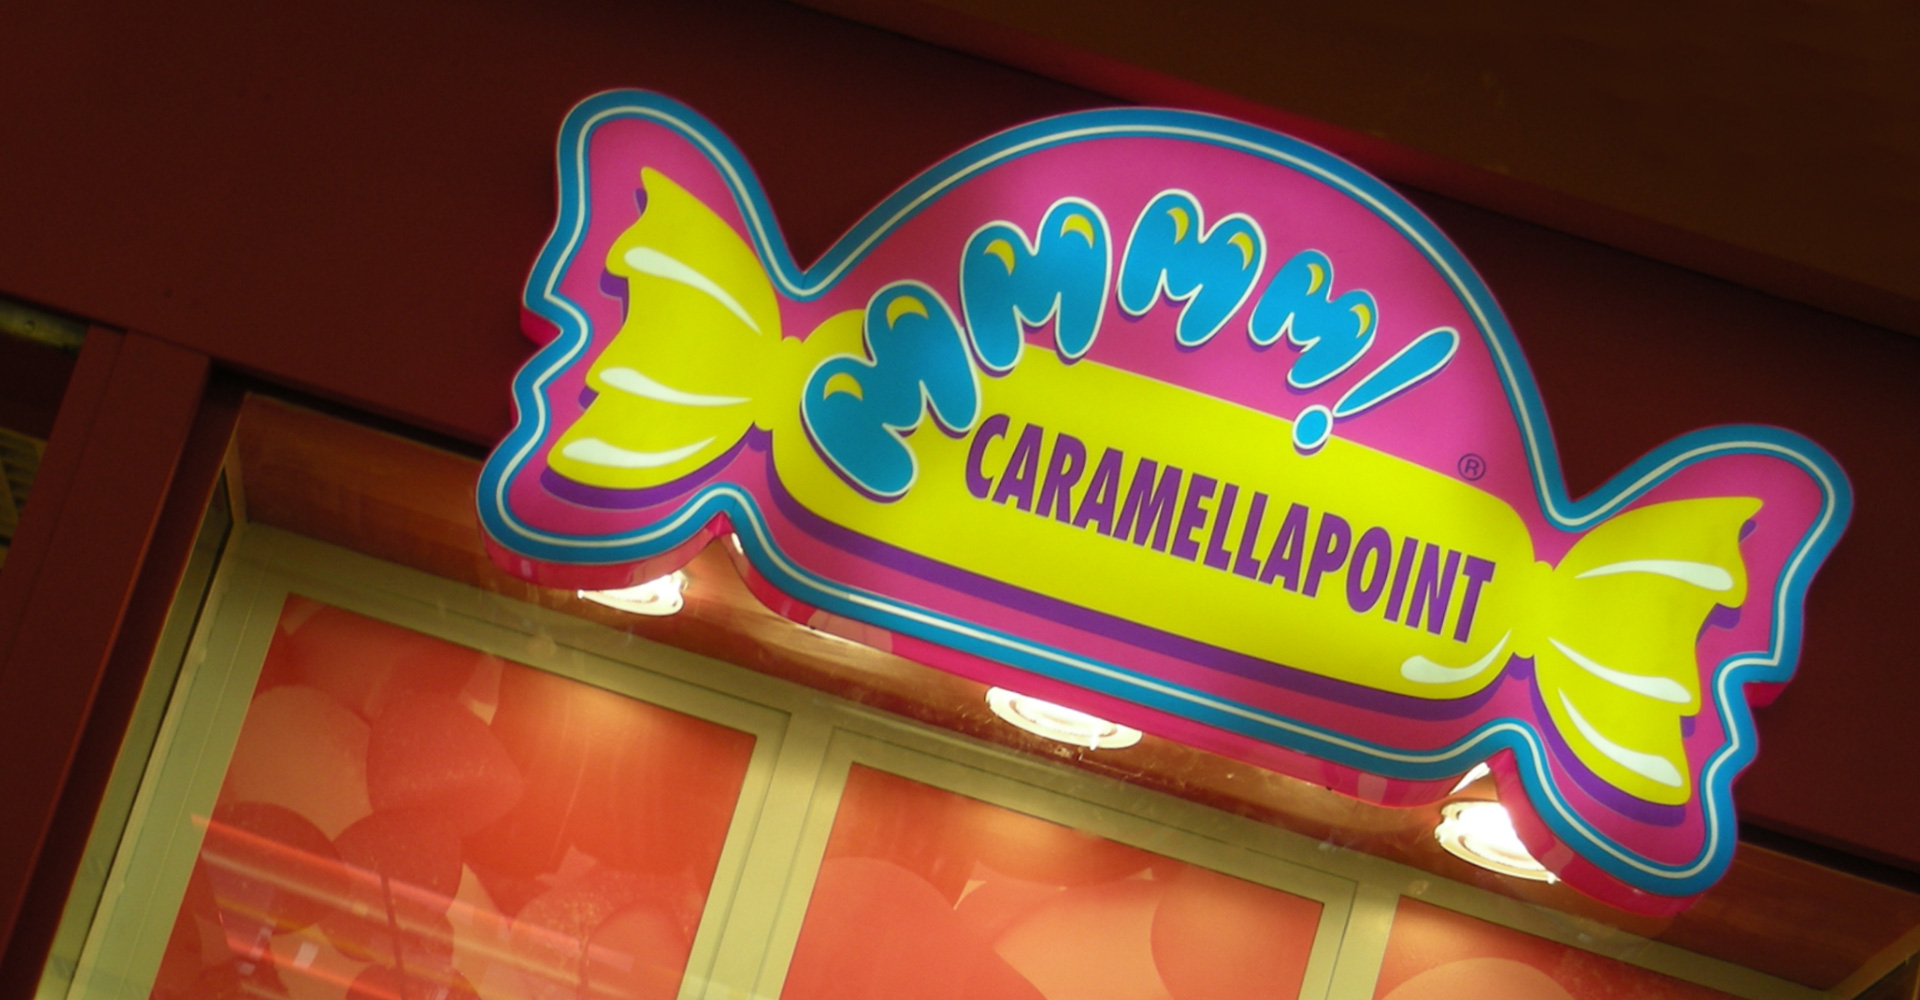 caramellapoint grande